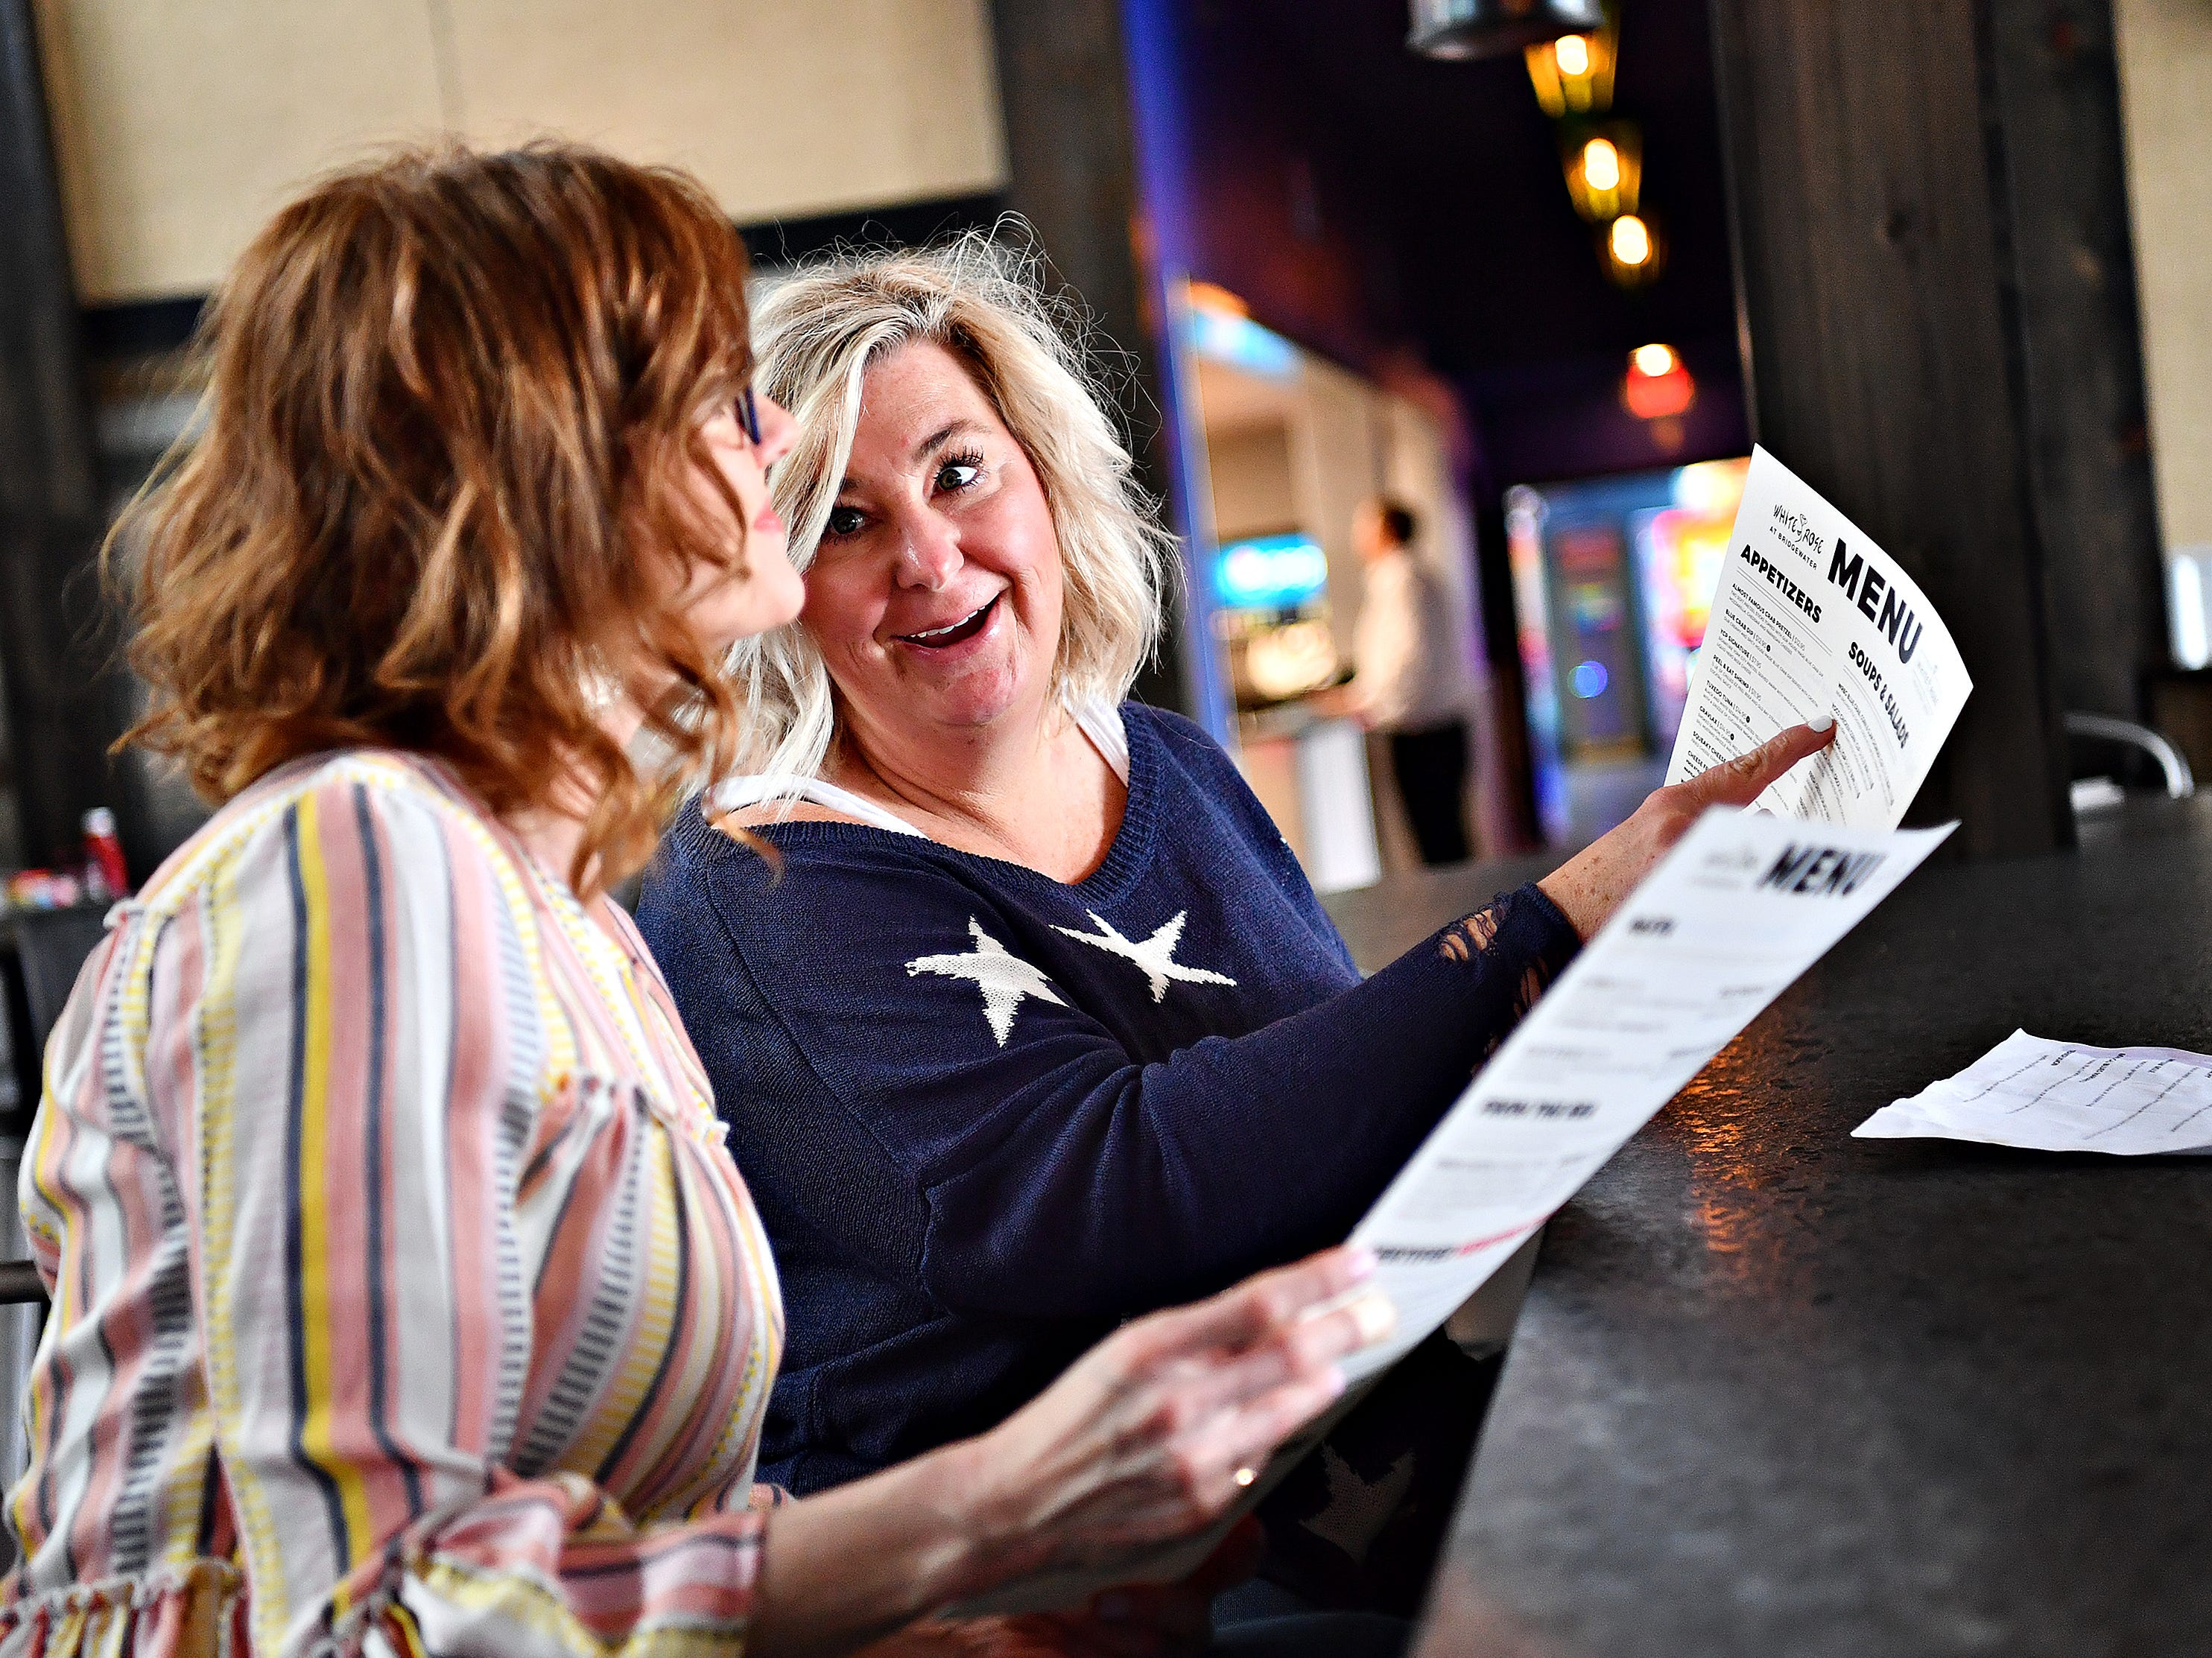 Amy Curran, back, and Liz Orendorf, both of York Township, discuss the menu while dining for lunch at White Rose at Bridgewater, which overlooks the Bridgewater Golf Course in York Township, Friday, April 12, 2019. Curran, who lives nearby, says she was at the restaurant the previous night and planned to dine there again for dinner on Friday. Dawn J. Sagert photo